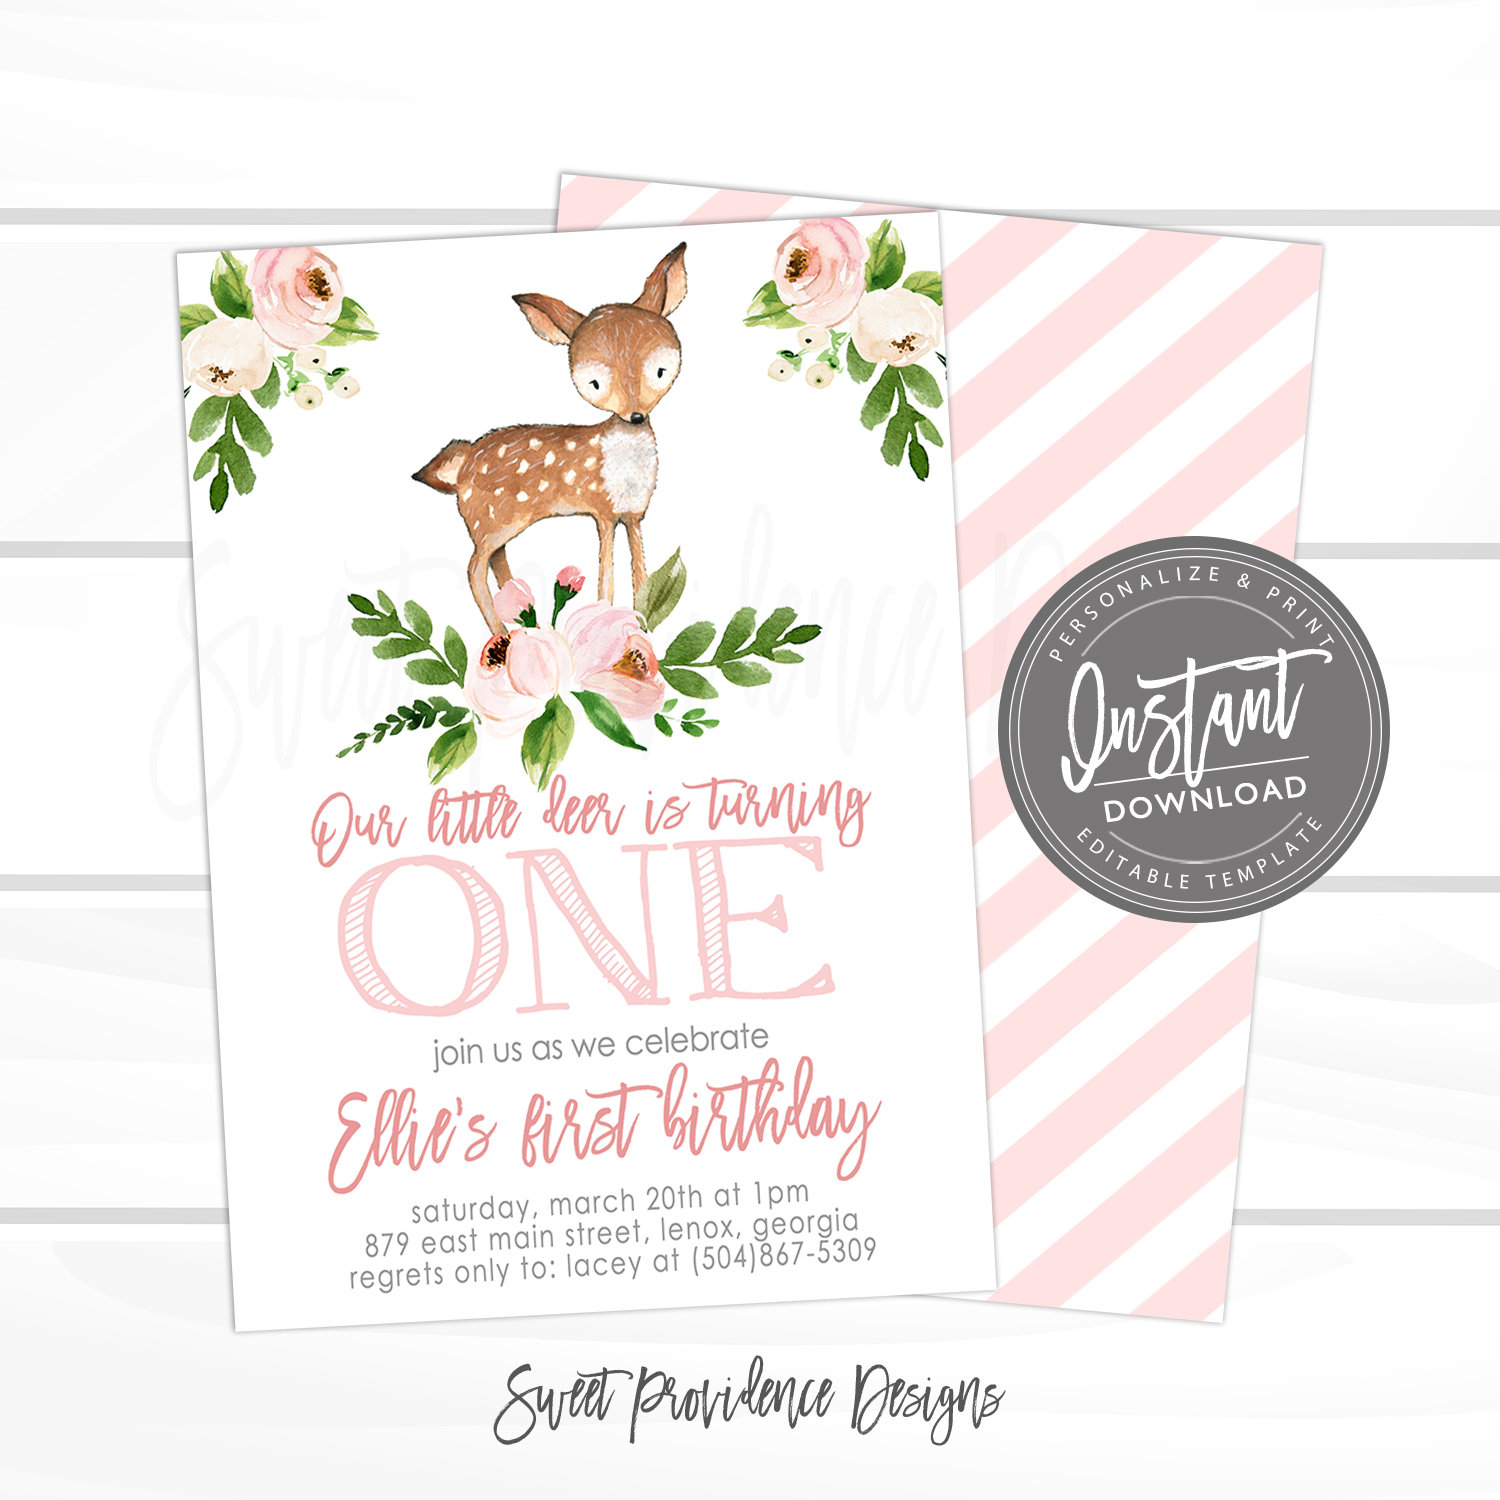 our little deer first birthday woodland deer birthday invitation pink floral woodland invite editable template instant access edit now